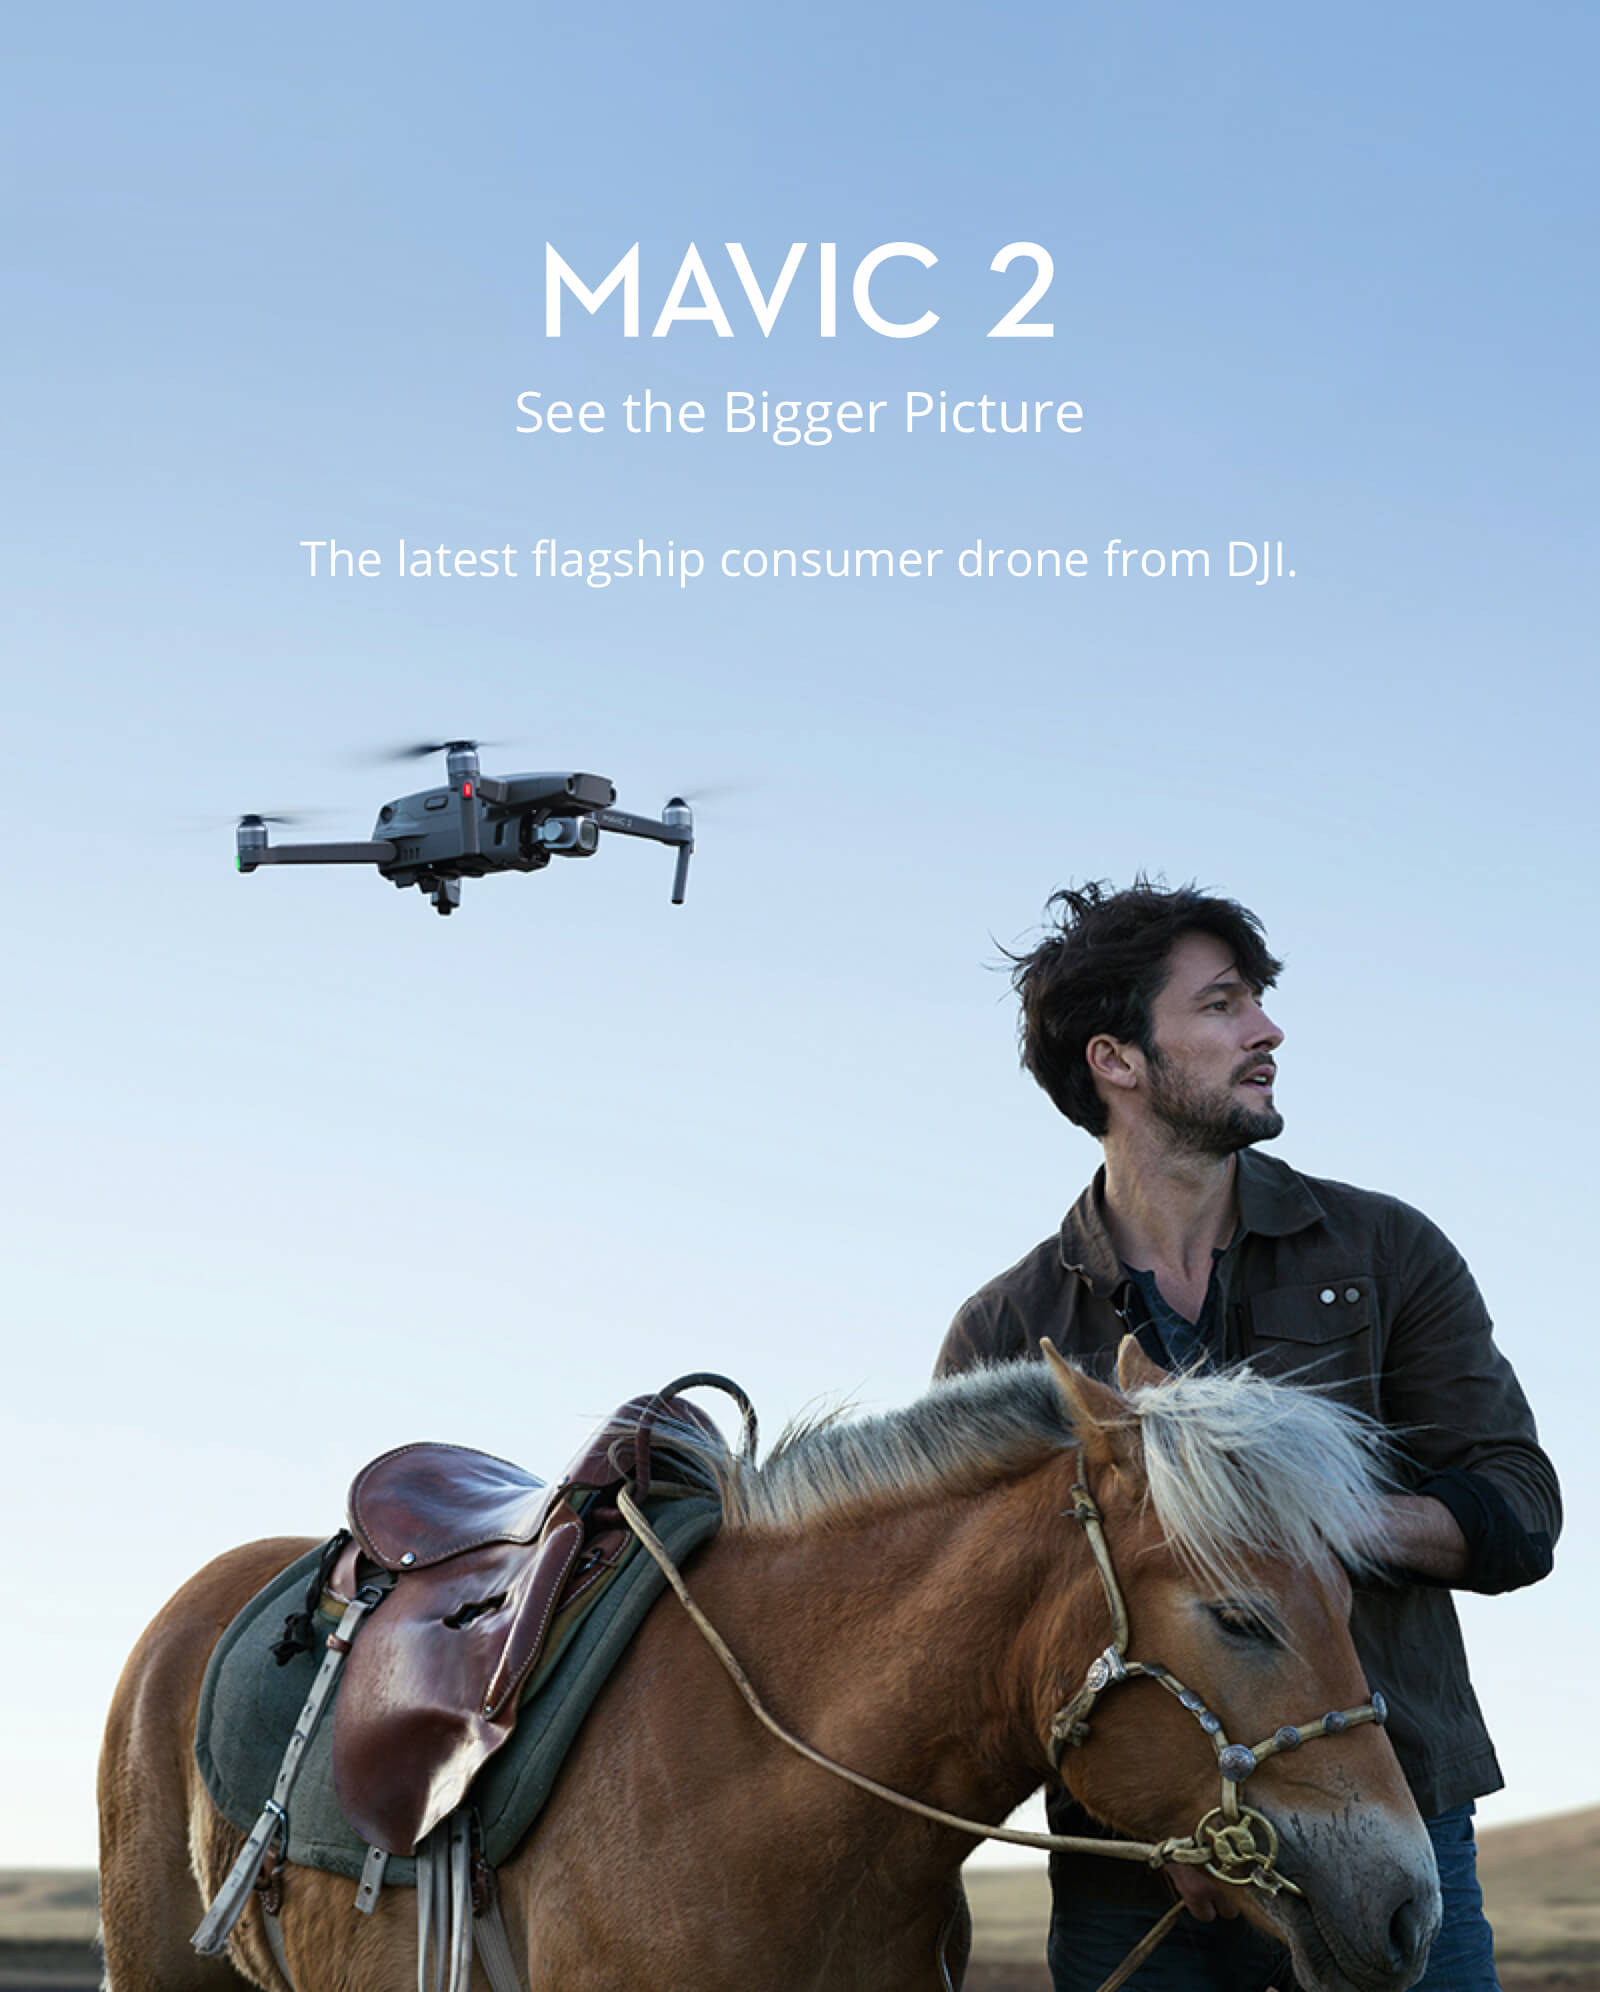 Mavic 2 Zoom Quadcopter - 12MP, 2x Optical Zoom 12